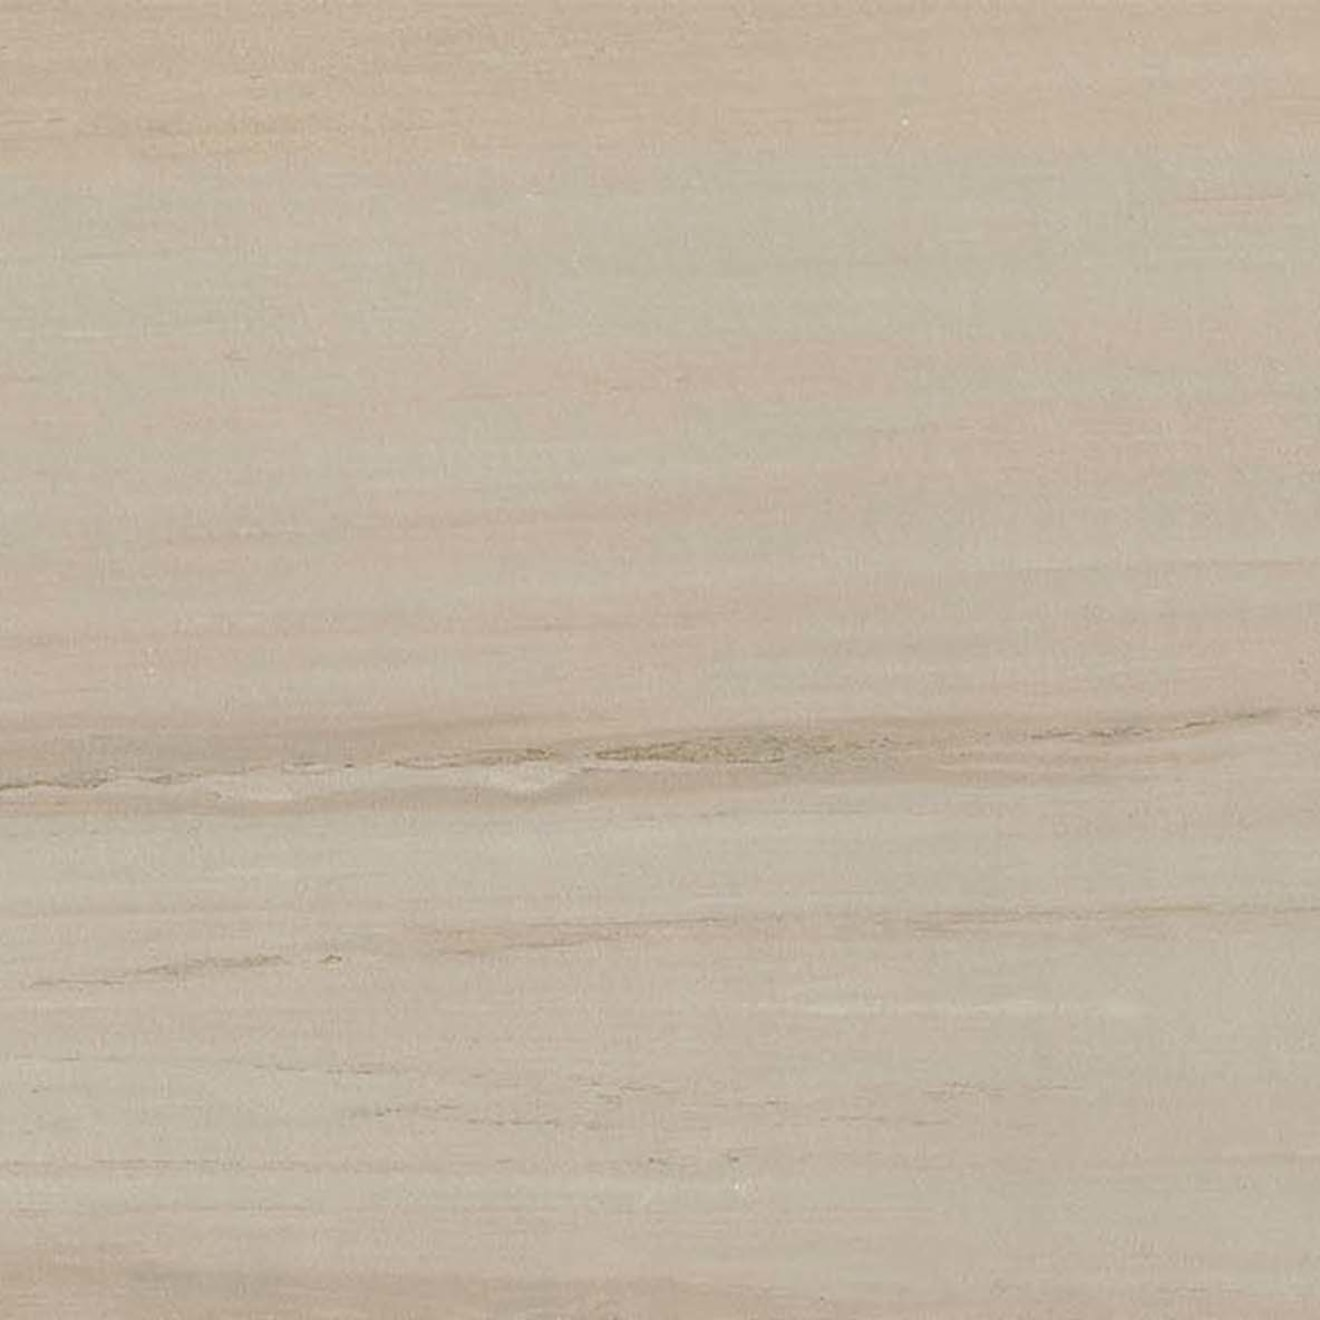 Rose Wood 8 X 36 3 Floor And Wall Tile In Off White